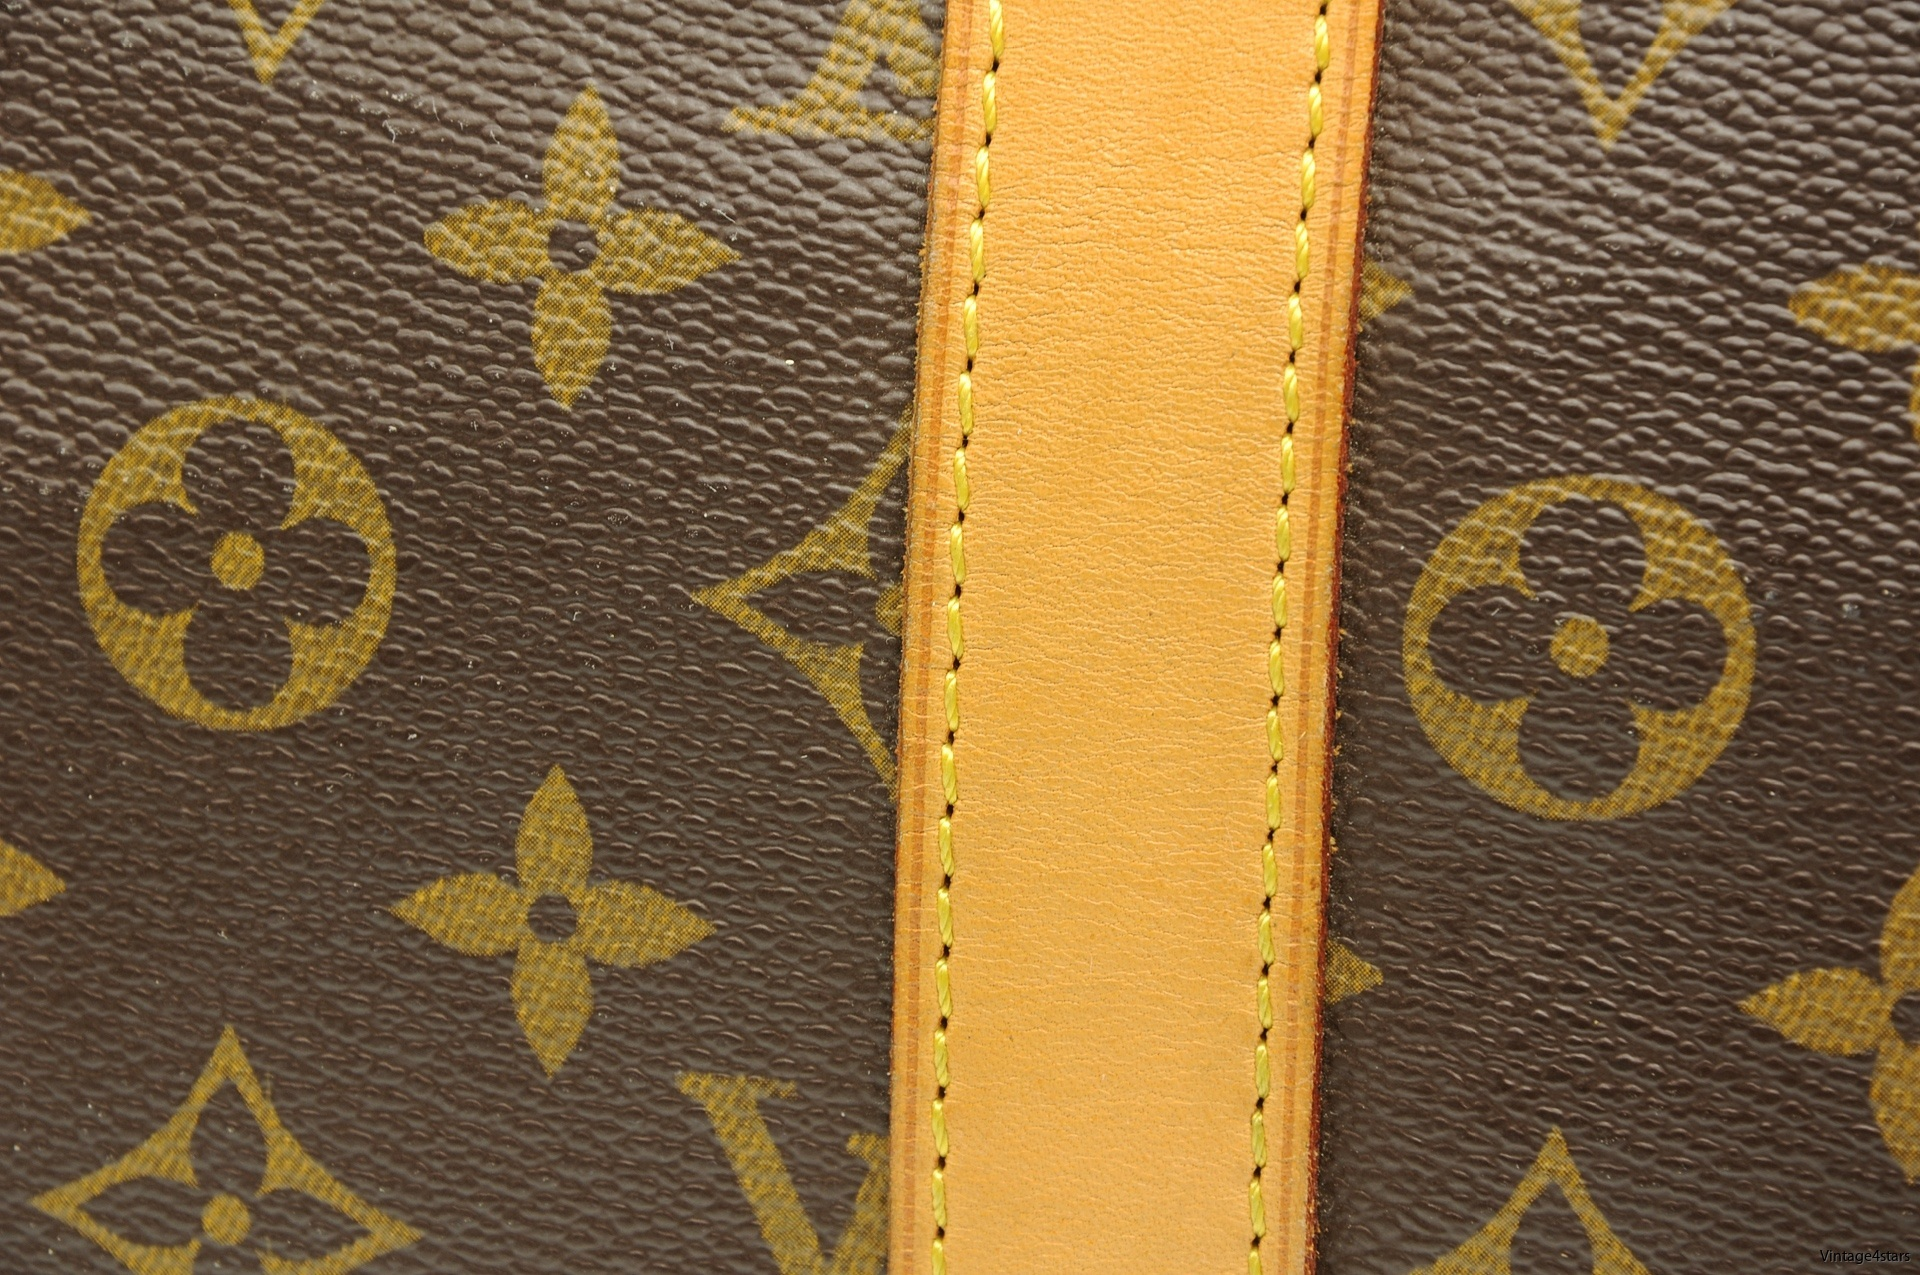 Louis Vuitton Keepall 55 11a